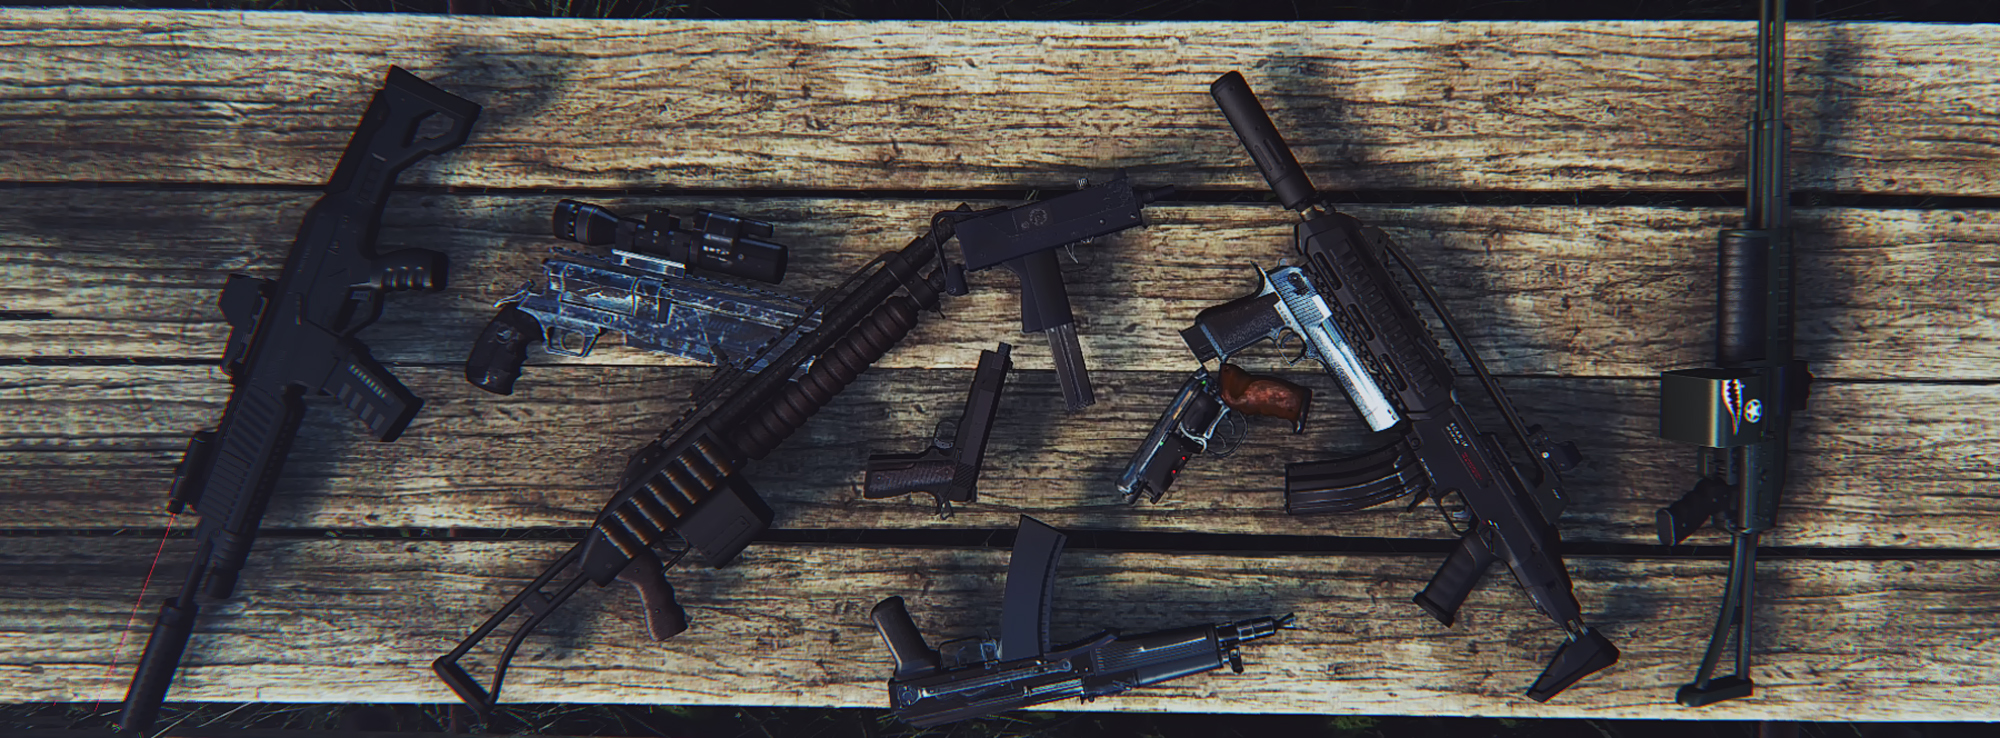 DOOMBASED Weapons Merged Mod for Fallout 4